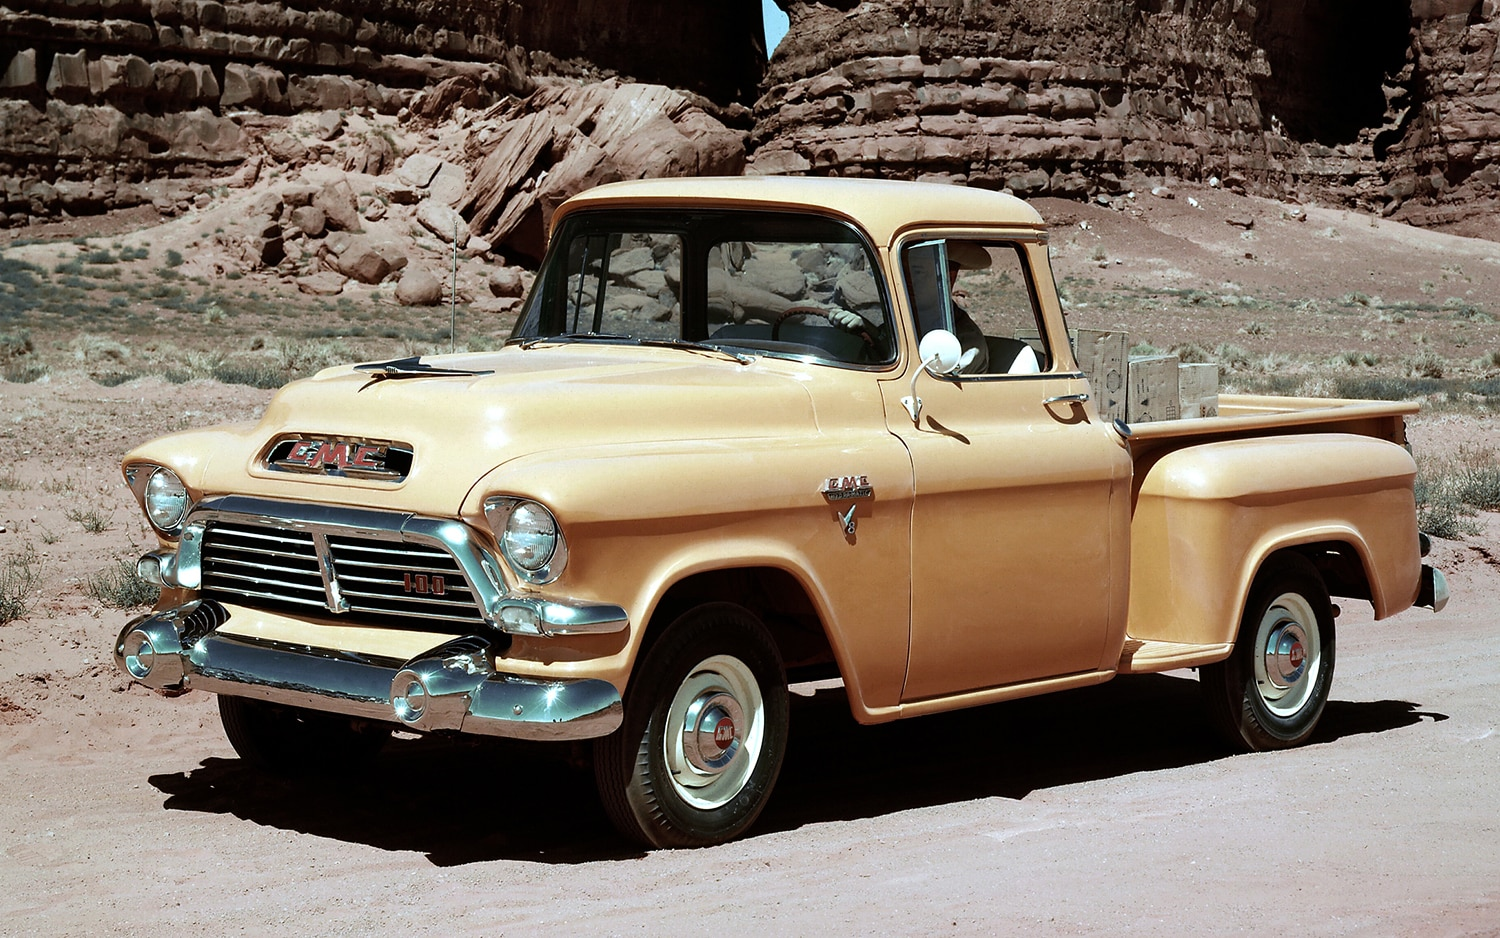 1957 GMC 100 Series Half Ton Pickup